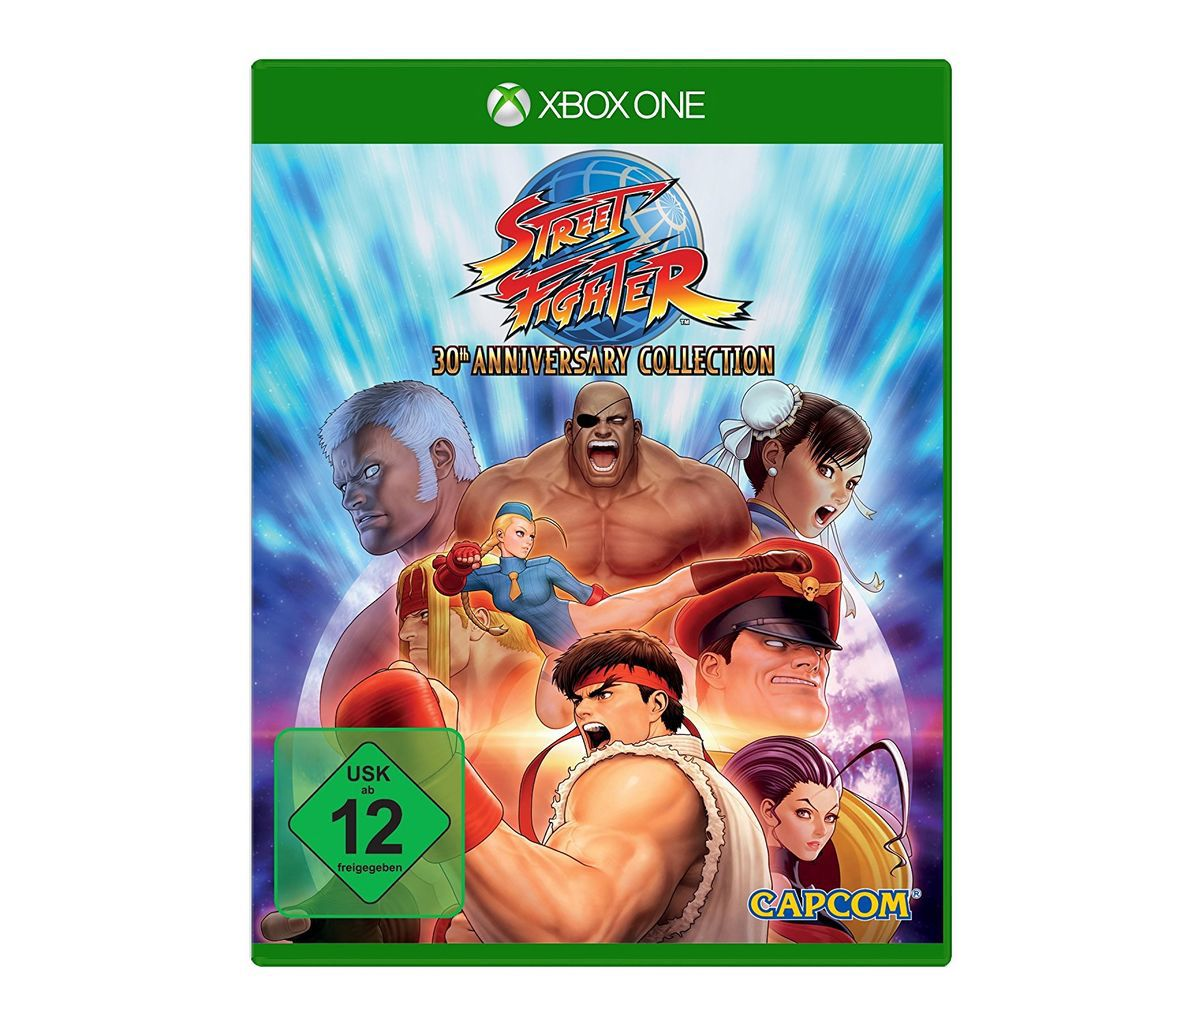 Capcom XBOX One - Spiel »Street Fighter Anniver...